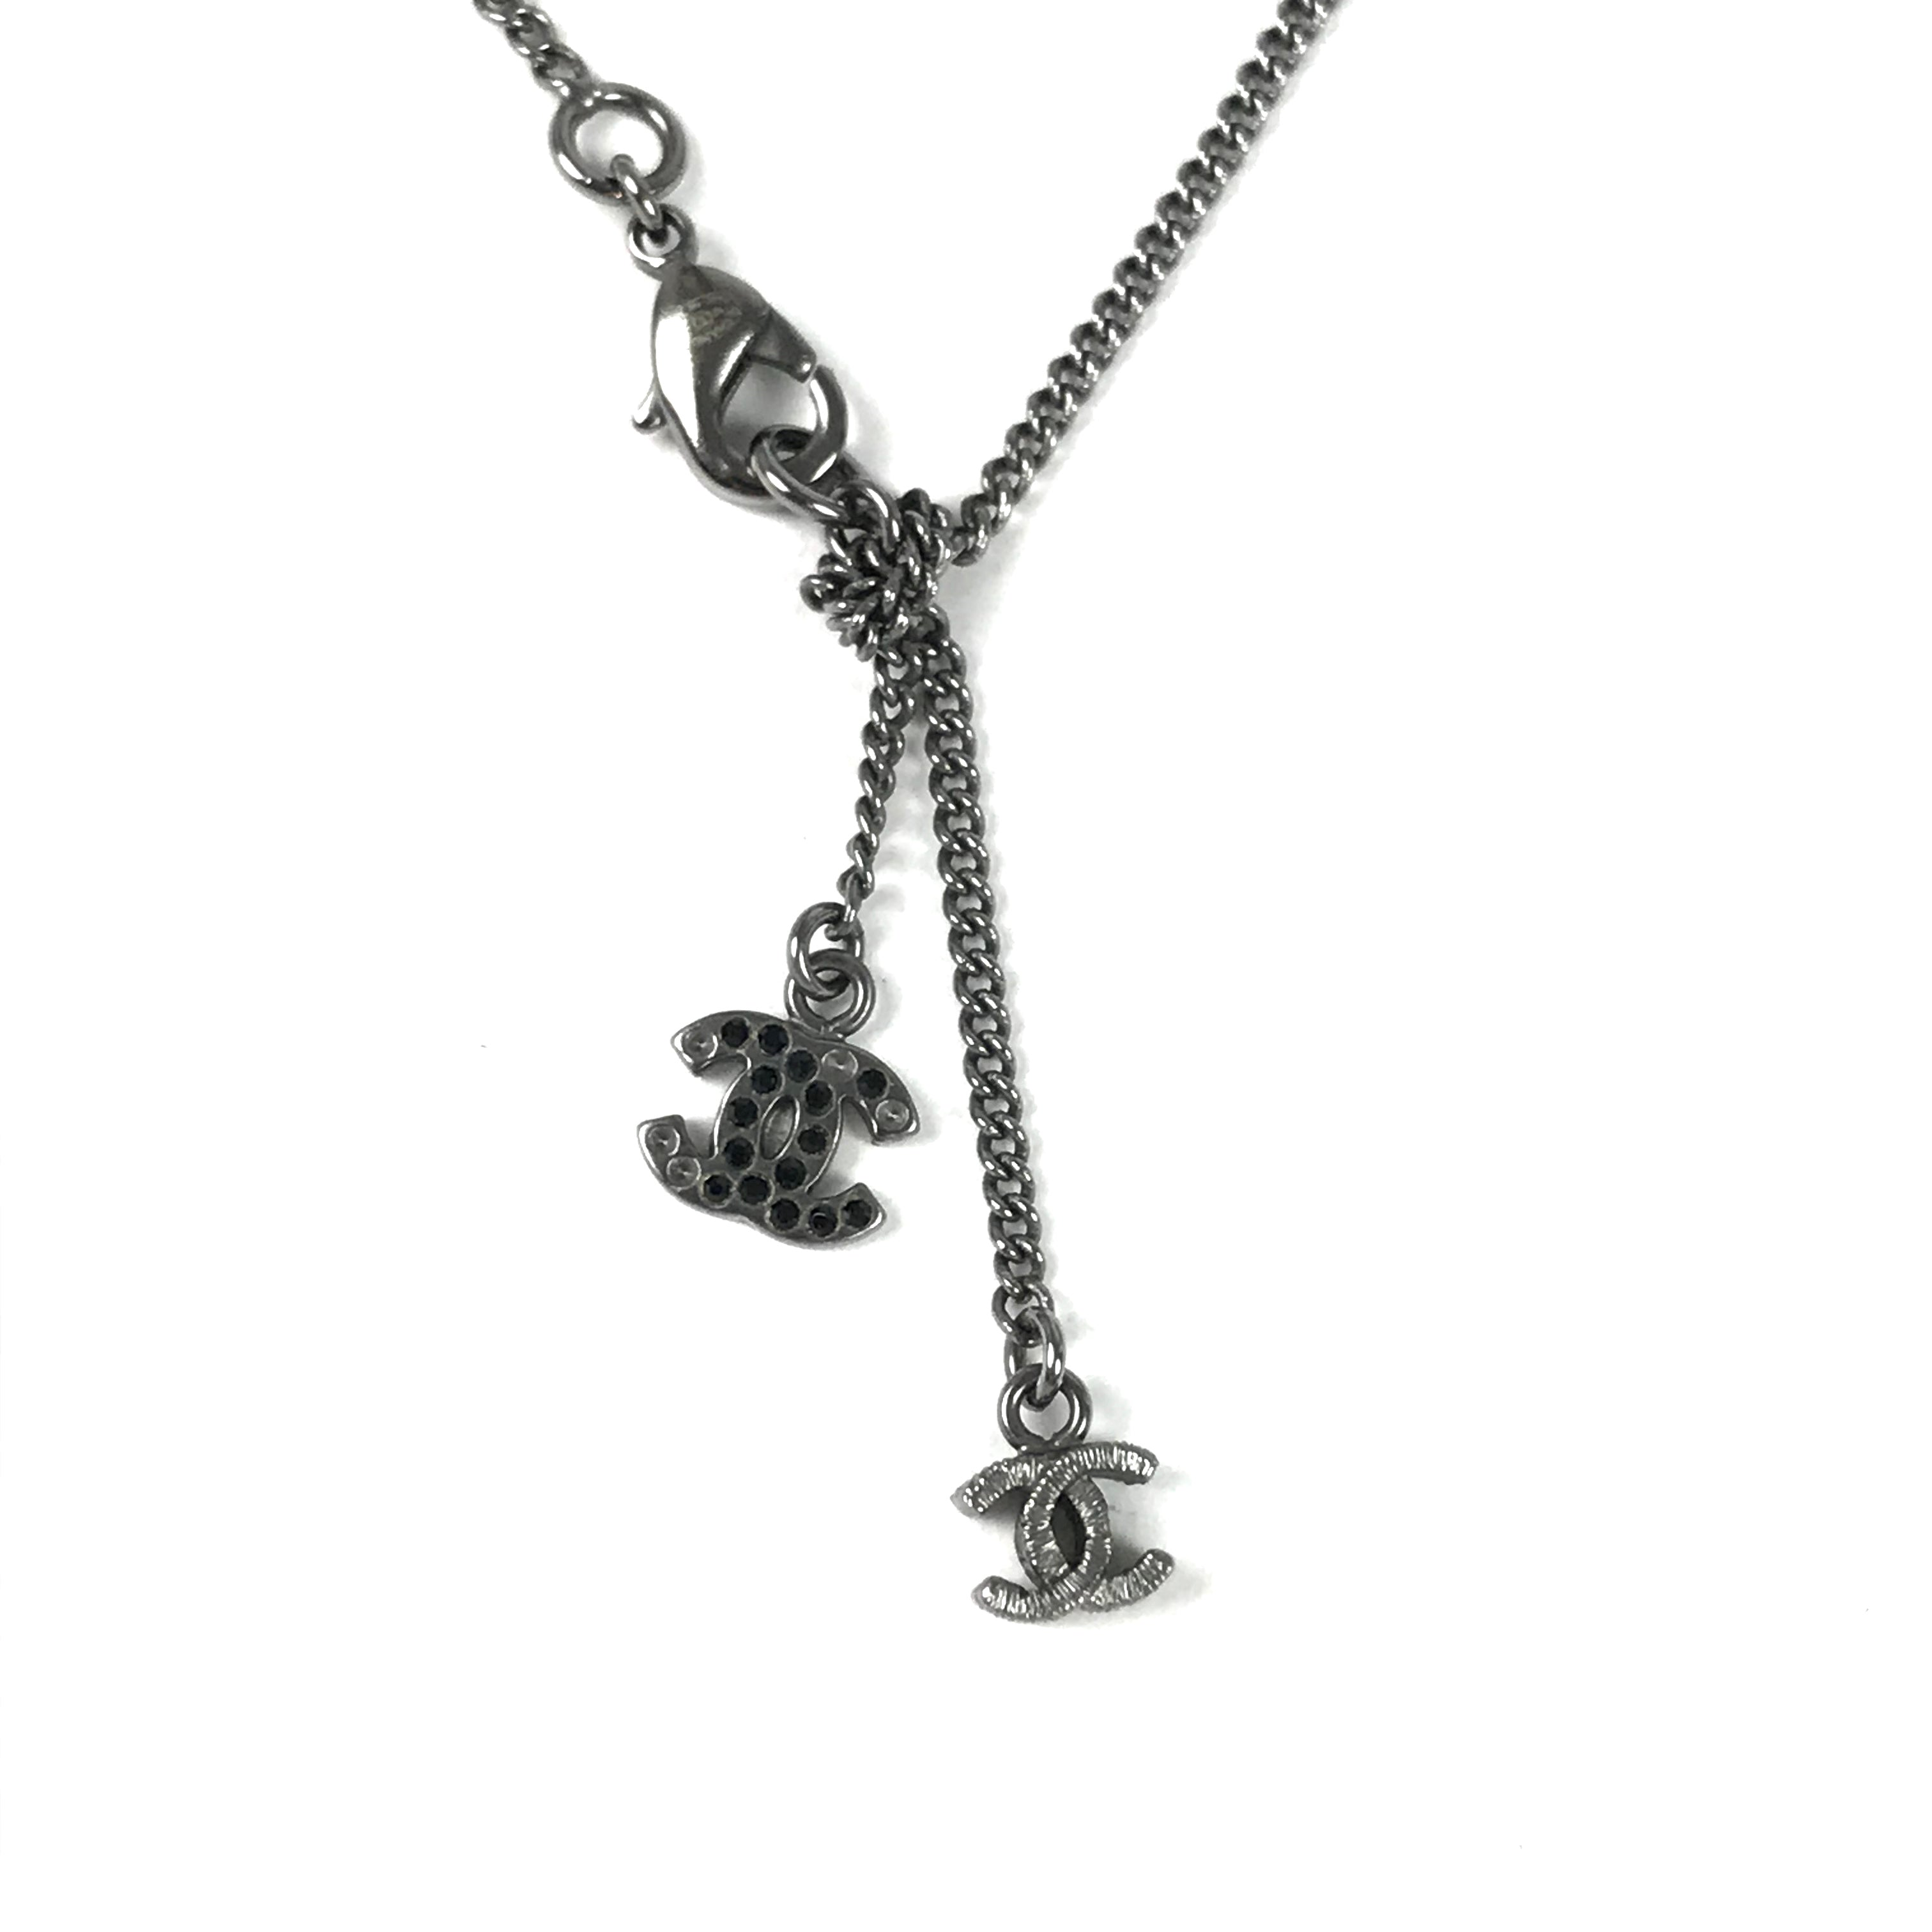 CHANEL Necklace Silver